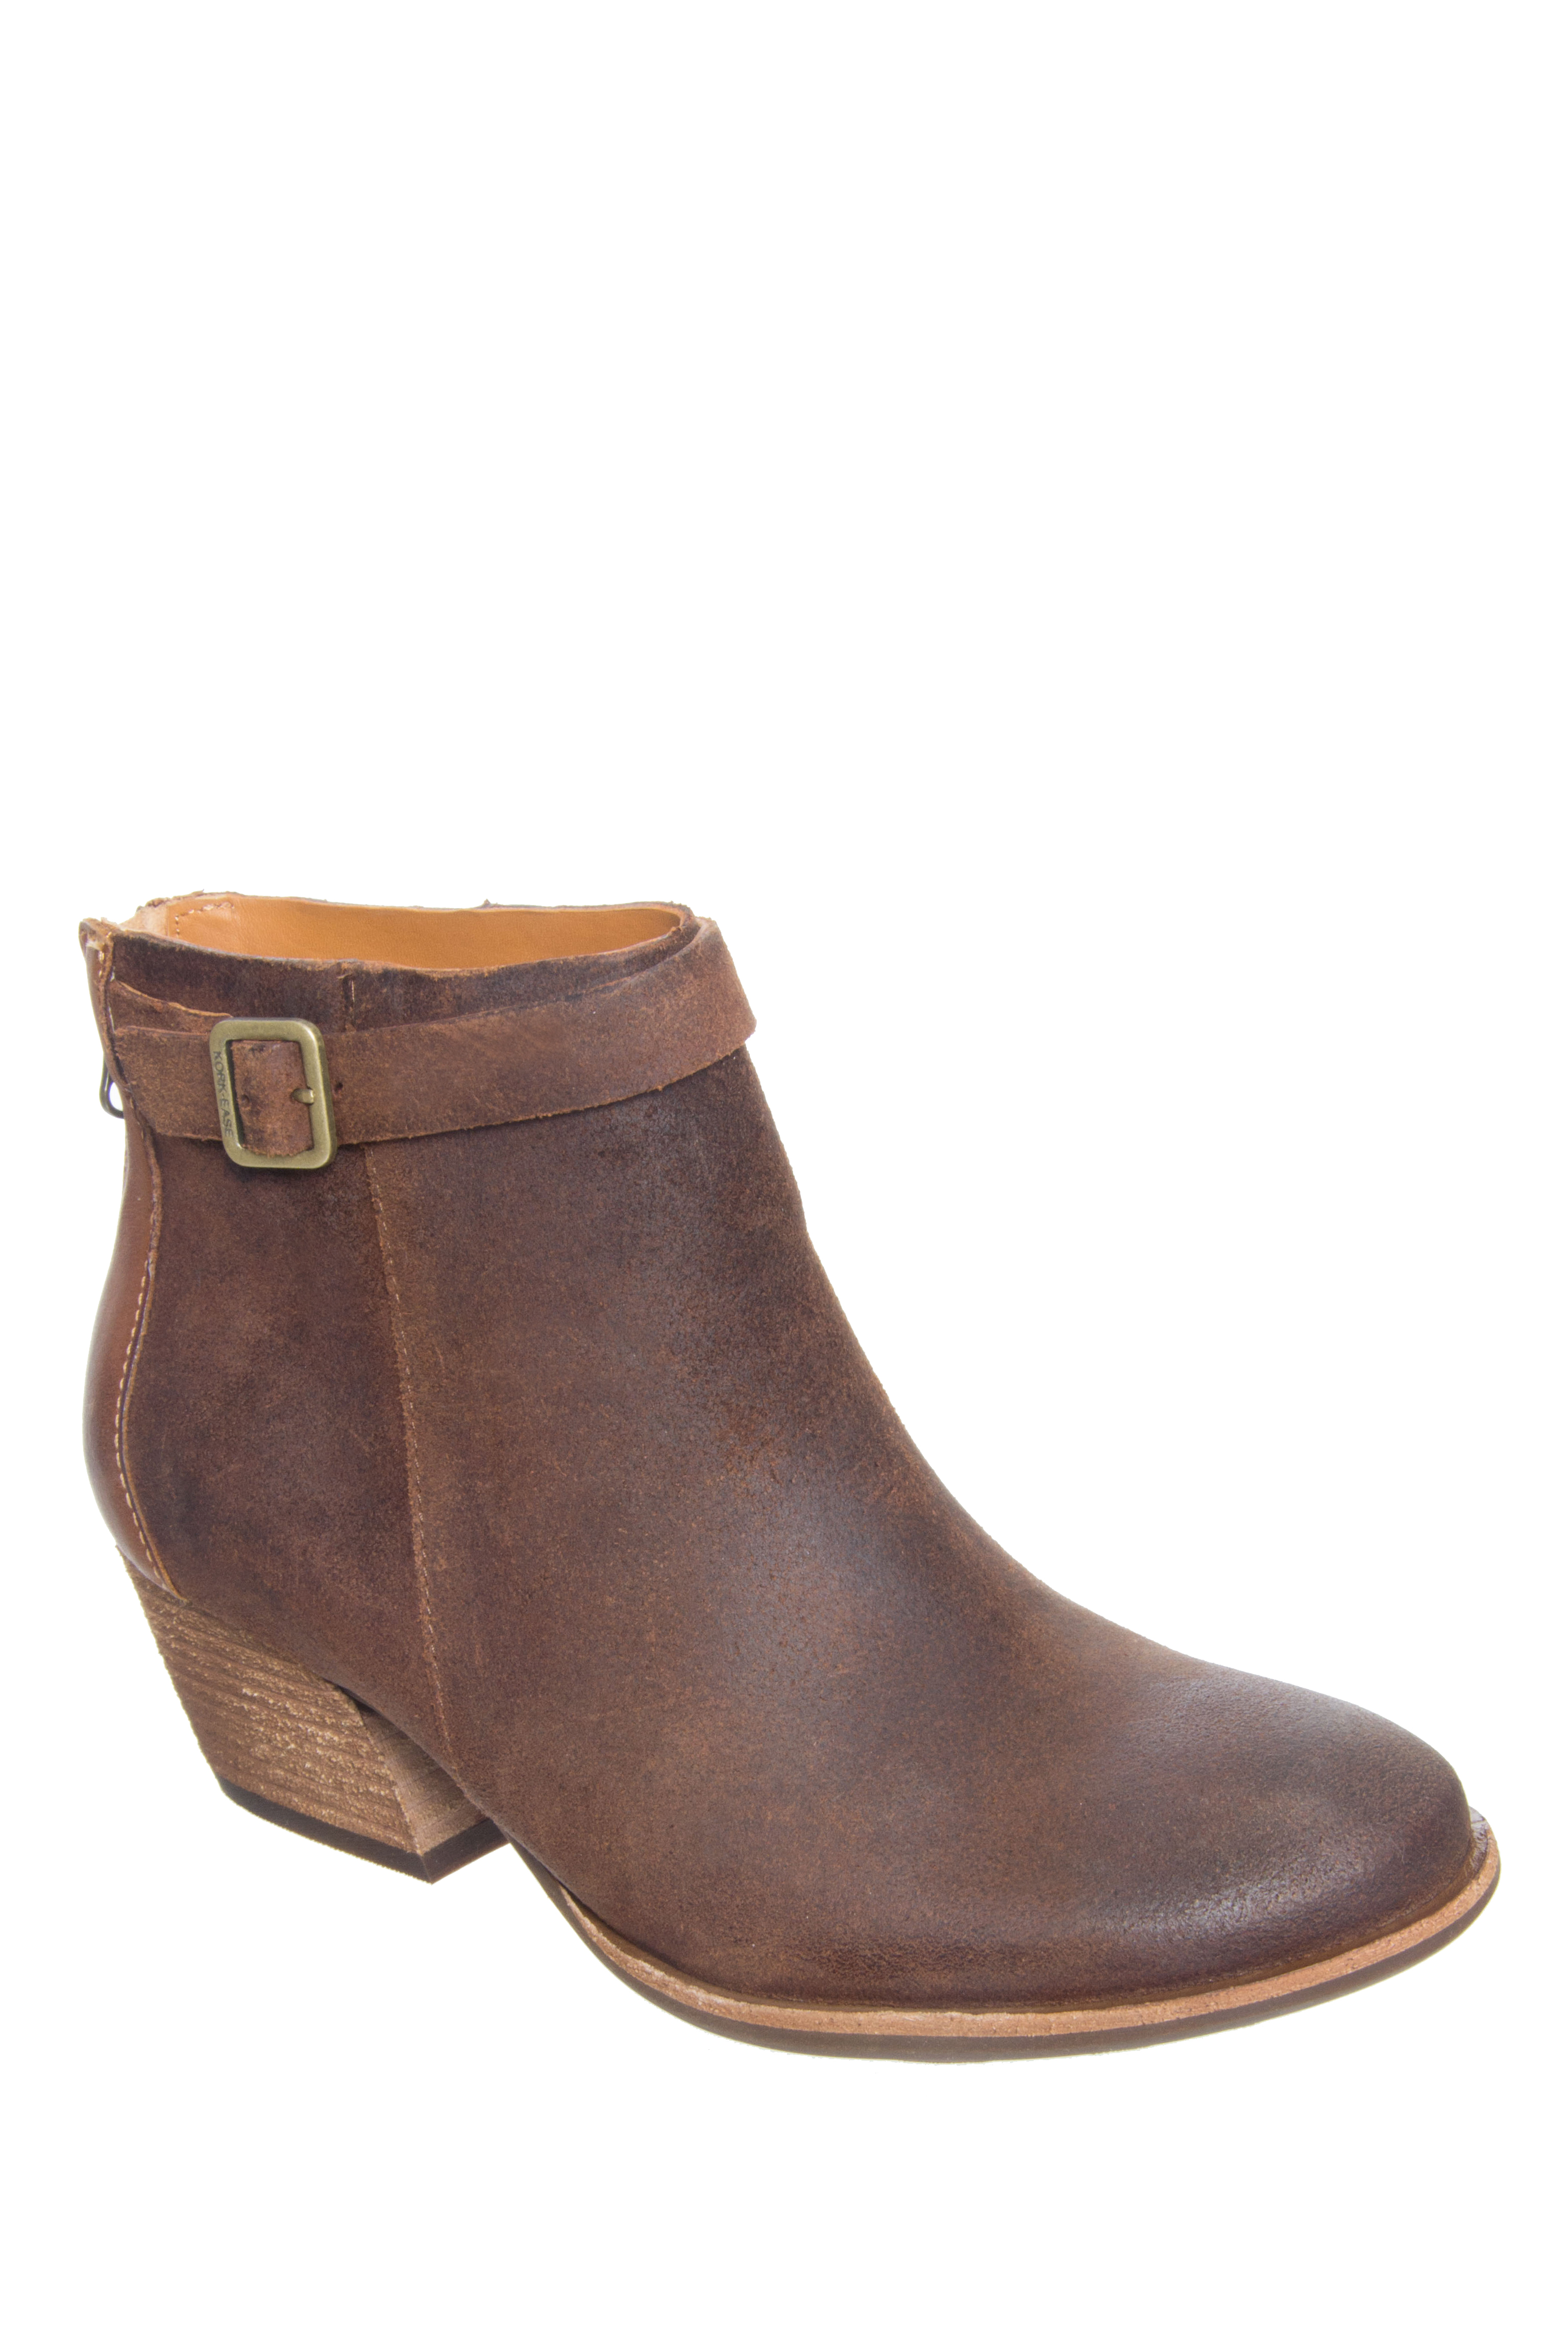 Kork-Ease Maddelena Mid Heel Booties - Tenne / Tan